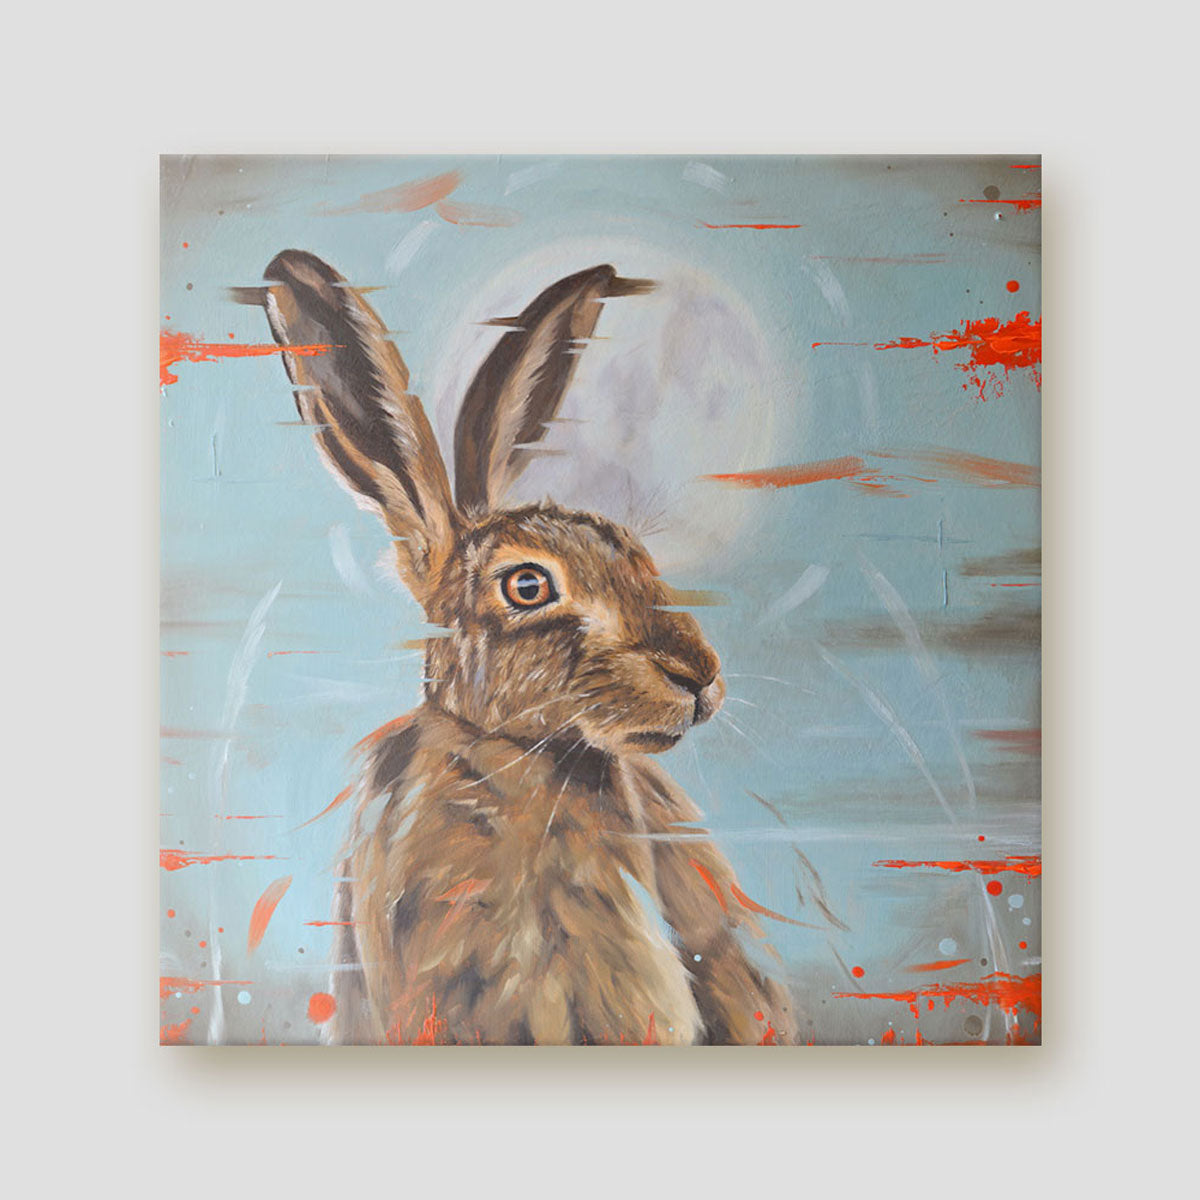 Moonstruck hare canvas print